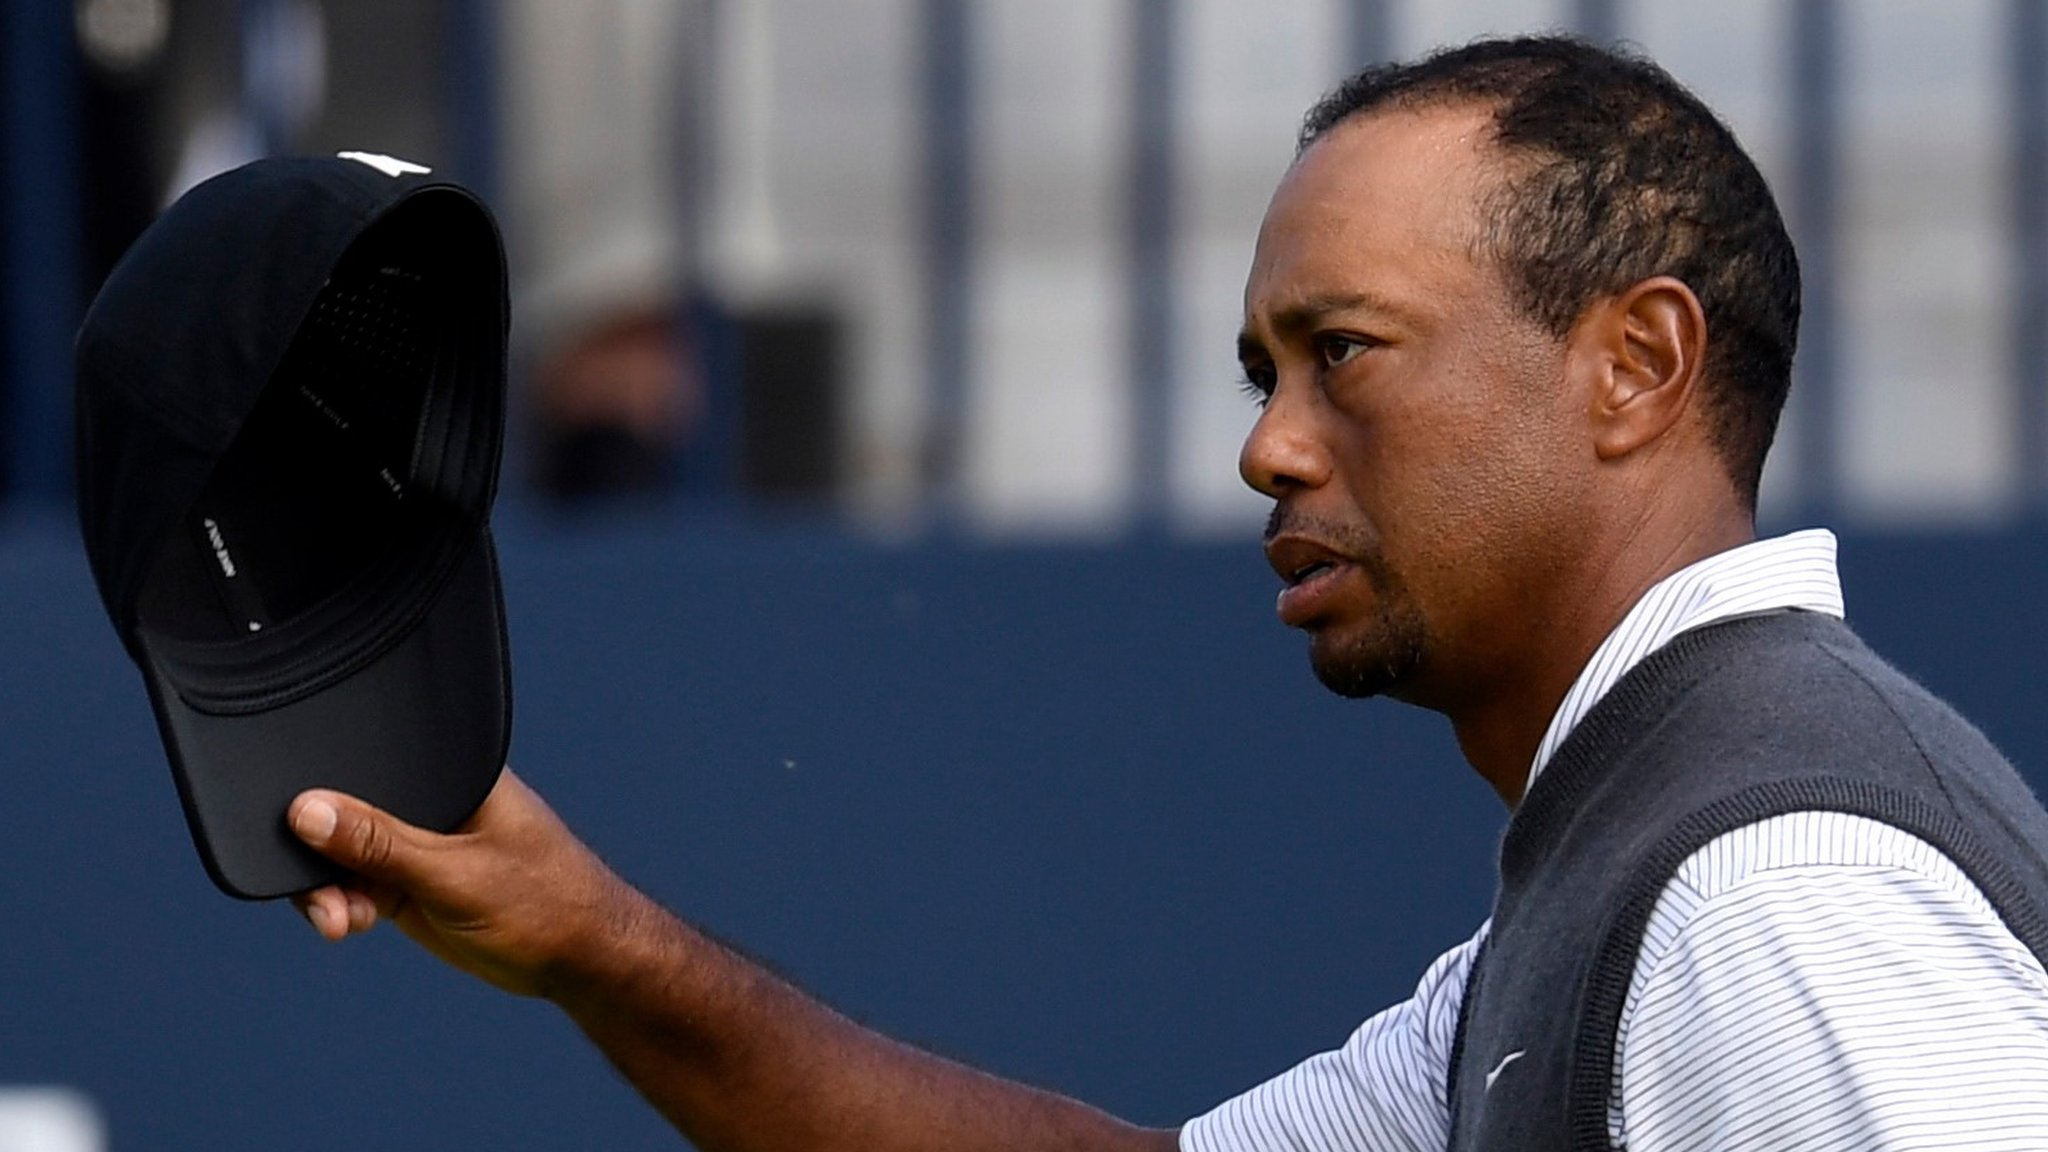 Tiger Woods moves into contention at The Open with round of 66